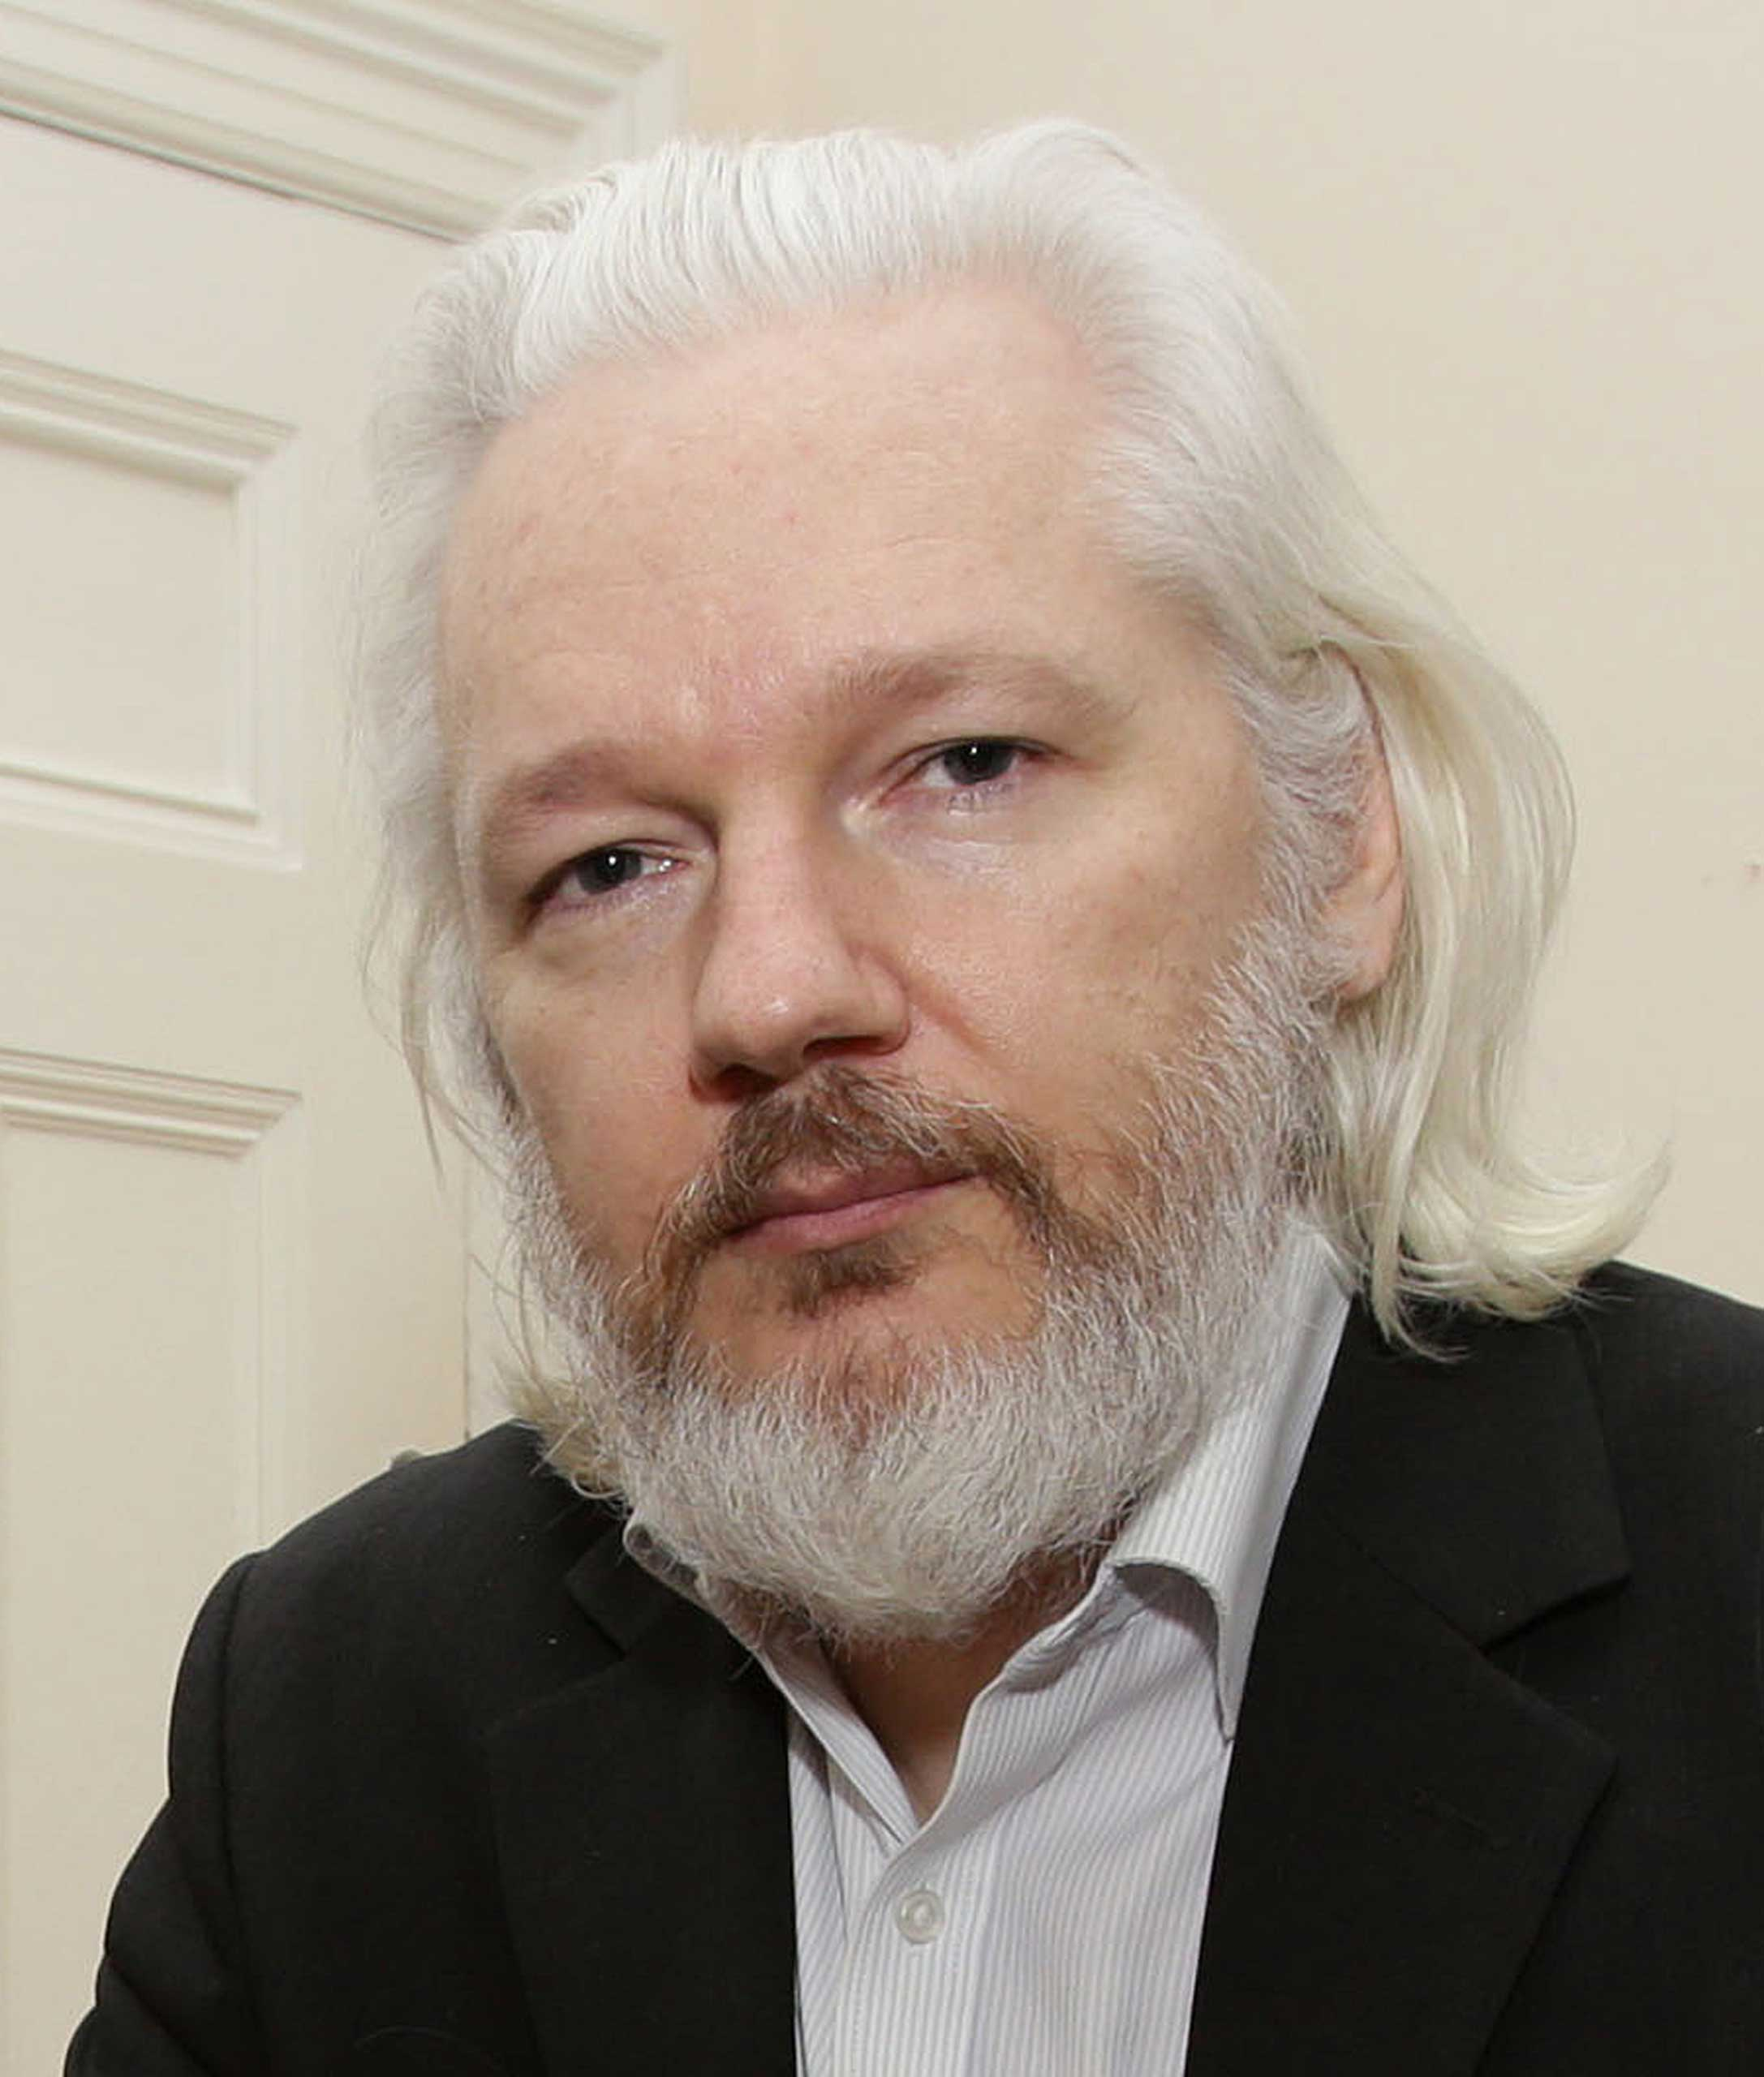 WikiLeaks founder Julian Assange who fears he may be assassinated if he steps outside the Ecuadorian embassy, Aug. 29, 2015.